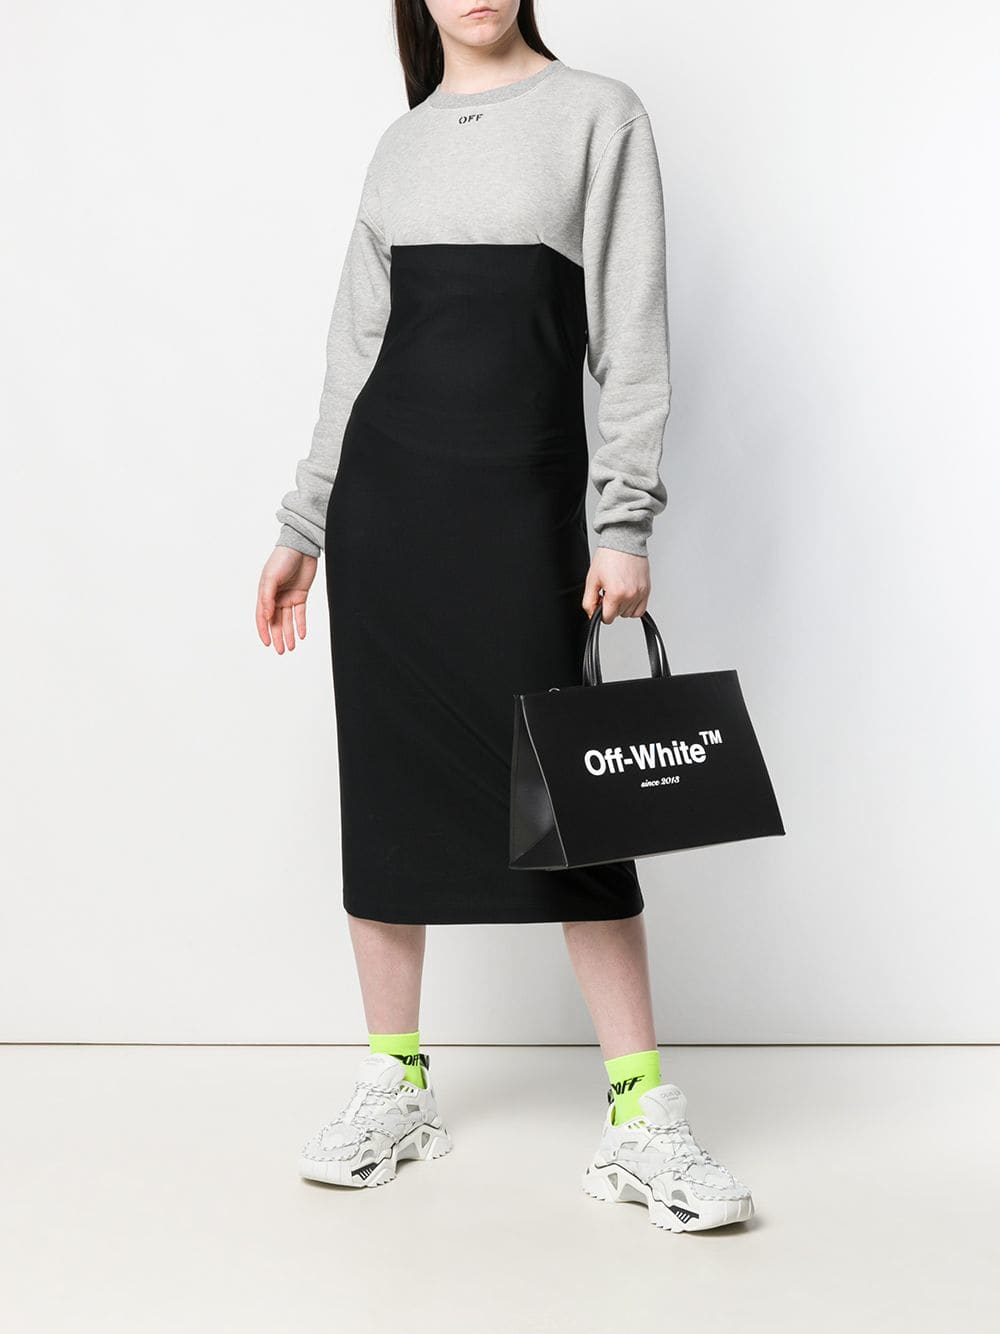 Off-White Logo Box Bag | Maison De Fashion